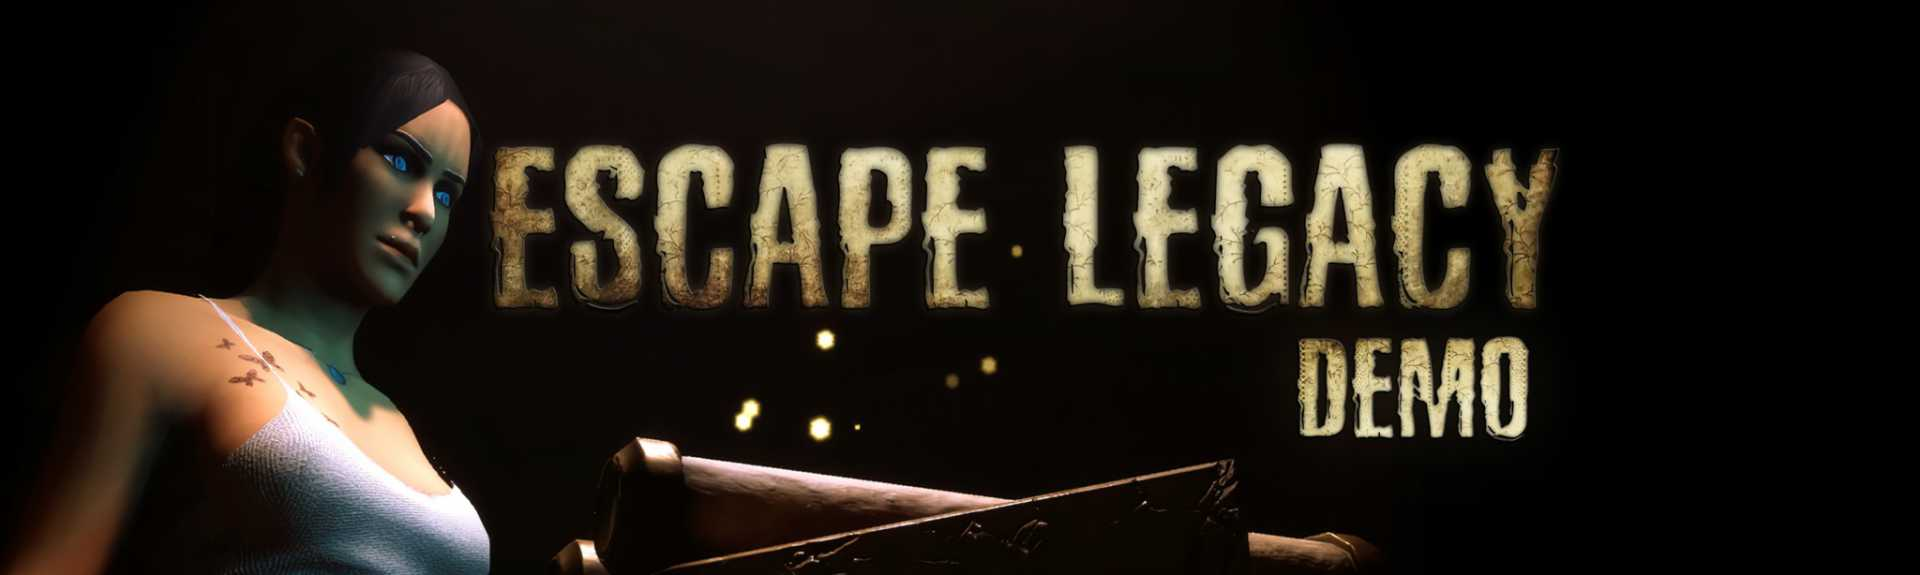 Escape Legacy - Demo